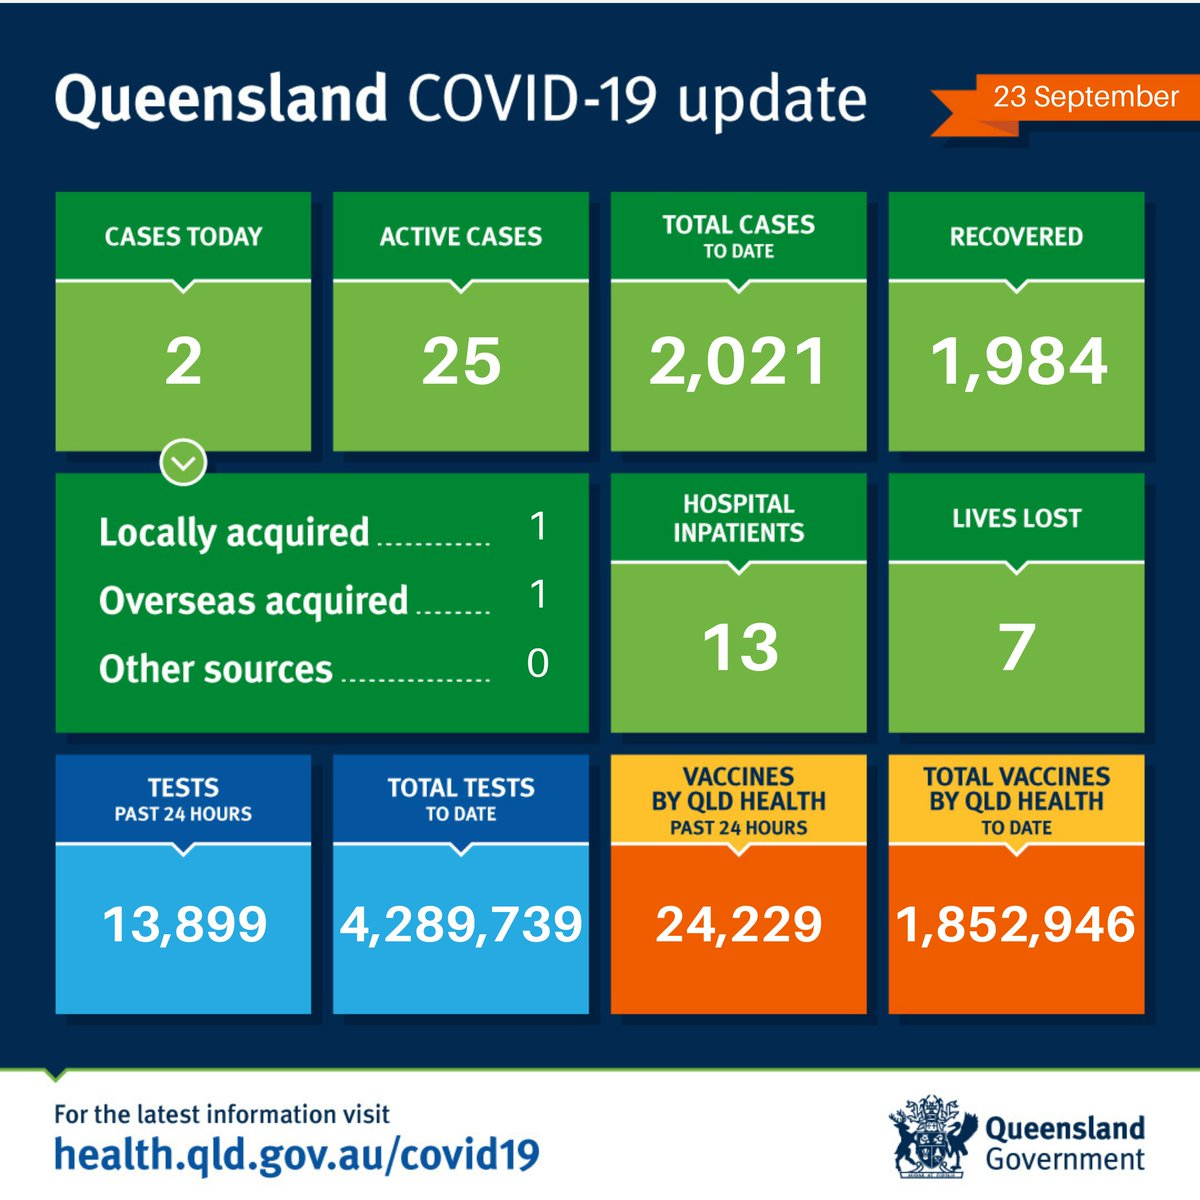 Queensland #COVID19 update 23/09/21 Today we have recorded 2 new cases of COVID-19. 1 case was locally acquired and detected in home quarantine. 1 case was overseas acquired and detected in hotel quarantine. Detailed information can be found here: health.qld.gov.au/covid-data